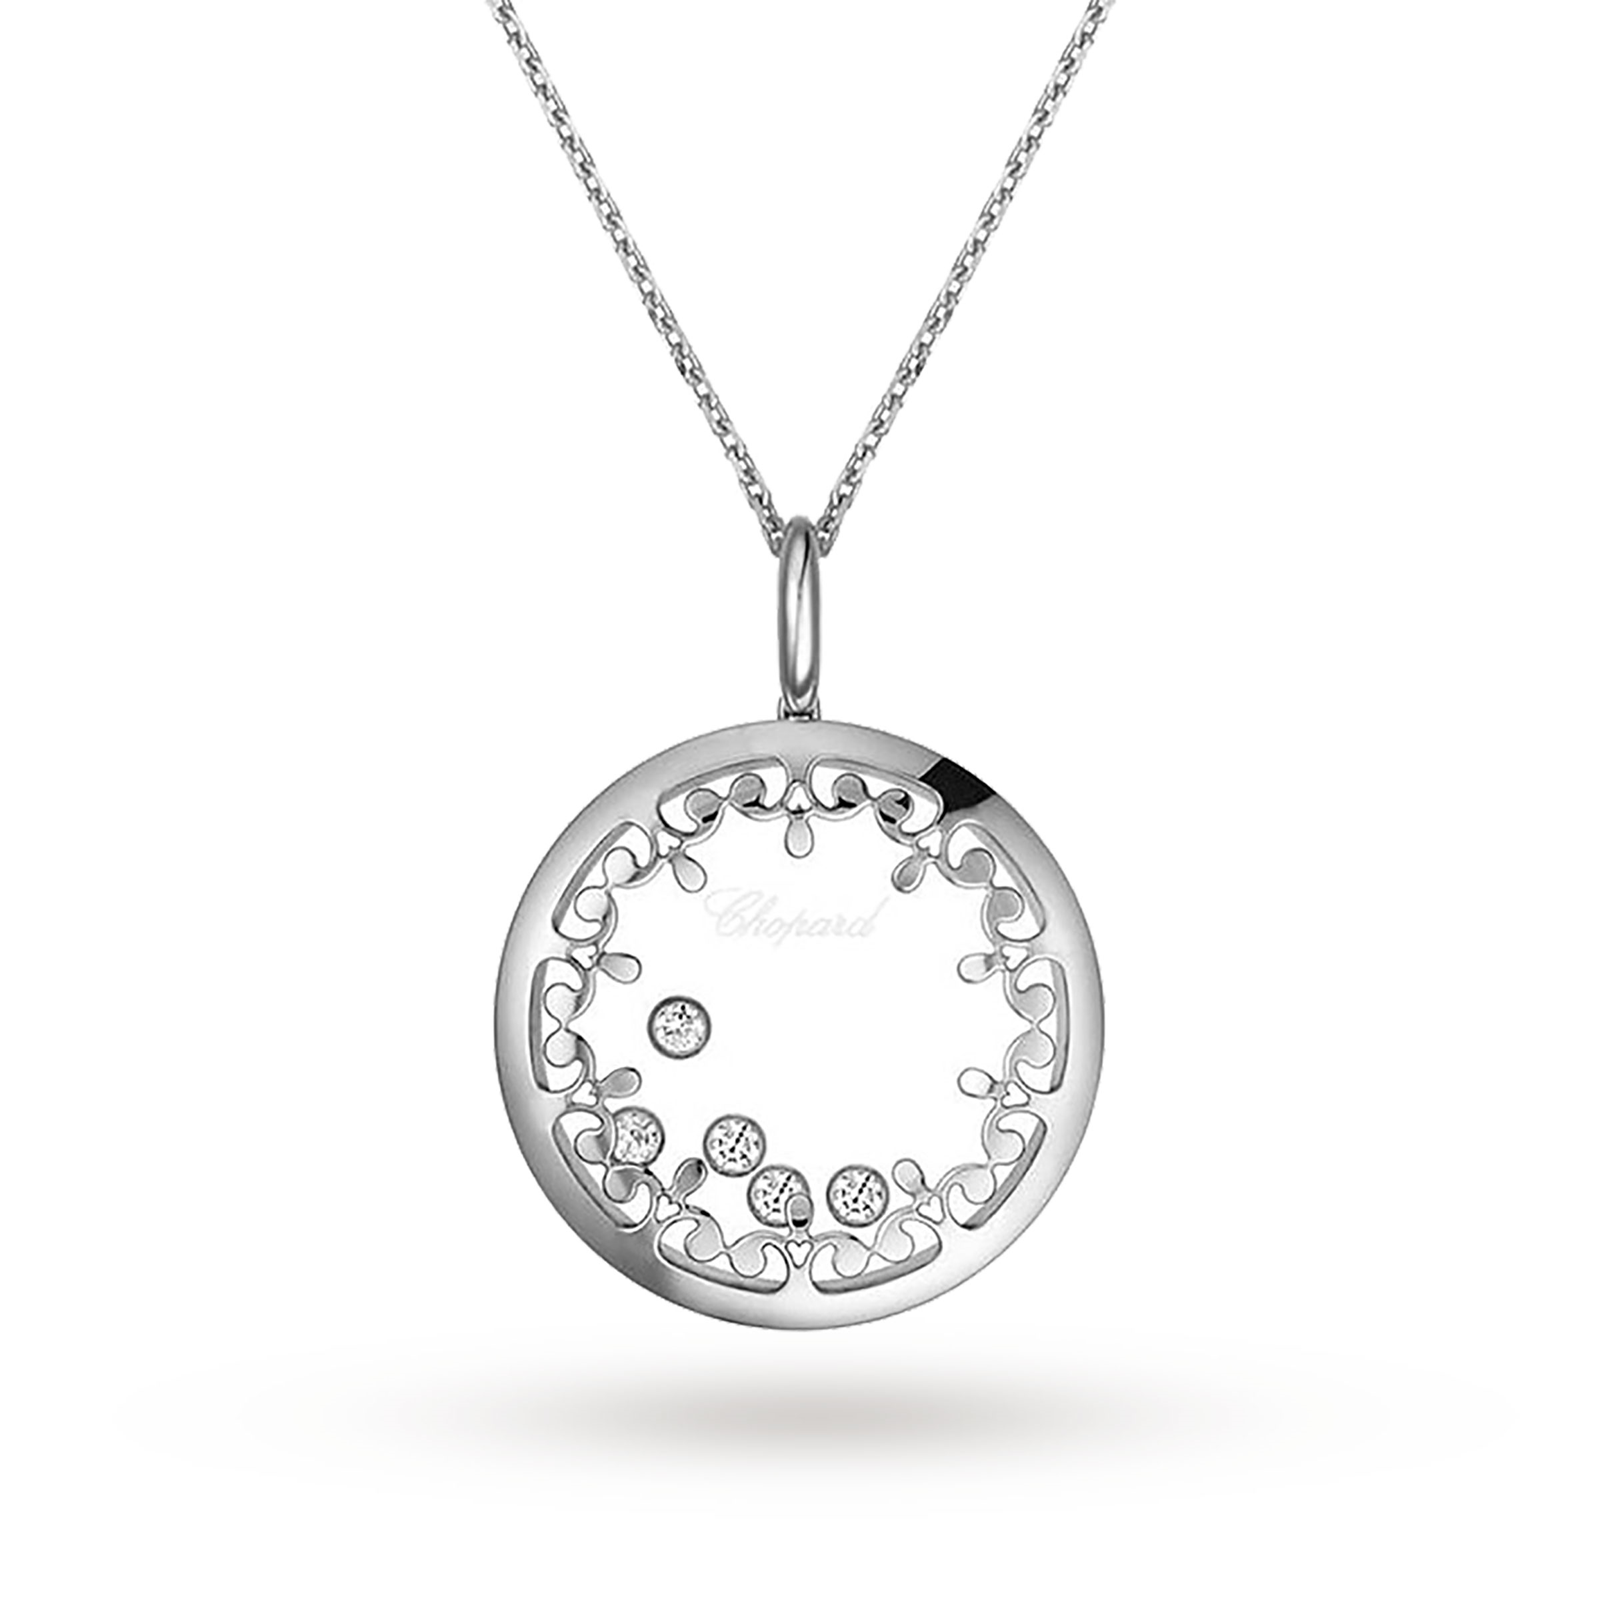 5c64d7699be1a Chopard Happy Diamonds 18ct White Gold Pendant | Necklaces | Jewellery |  Goldsmiths